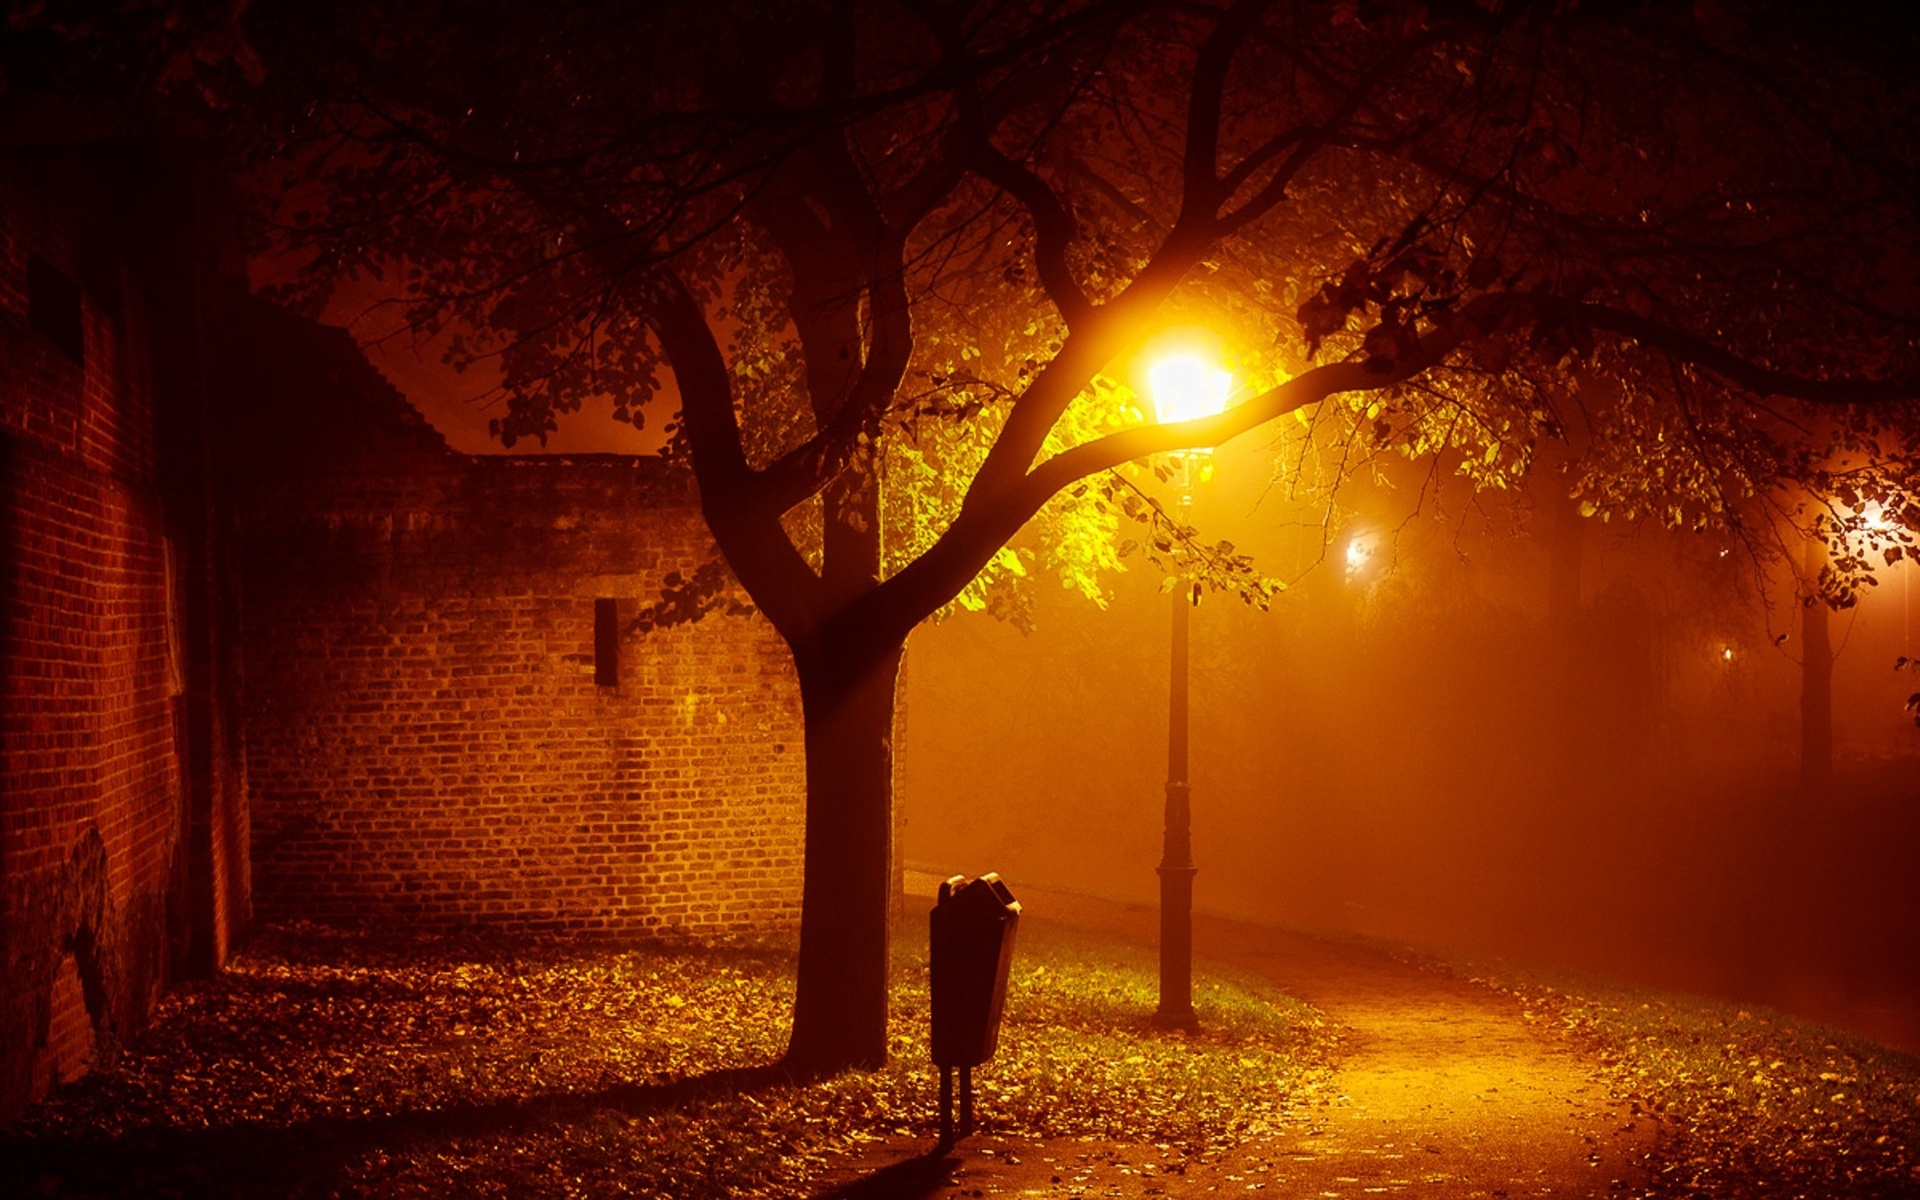 Landscapes Night Lights Mood Autumn Fall Seasonal Fog Mist Places Houses Buildings Architecture Trees Lamps Lamp Posts Photography Wallpaper